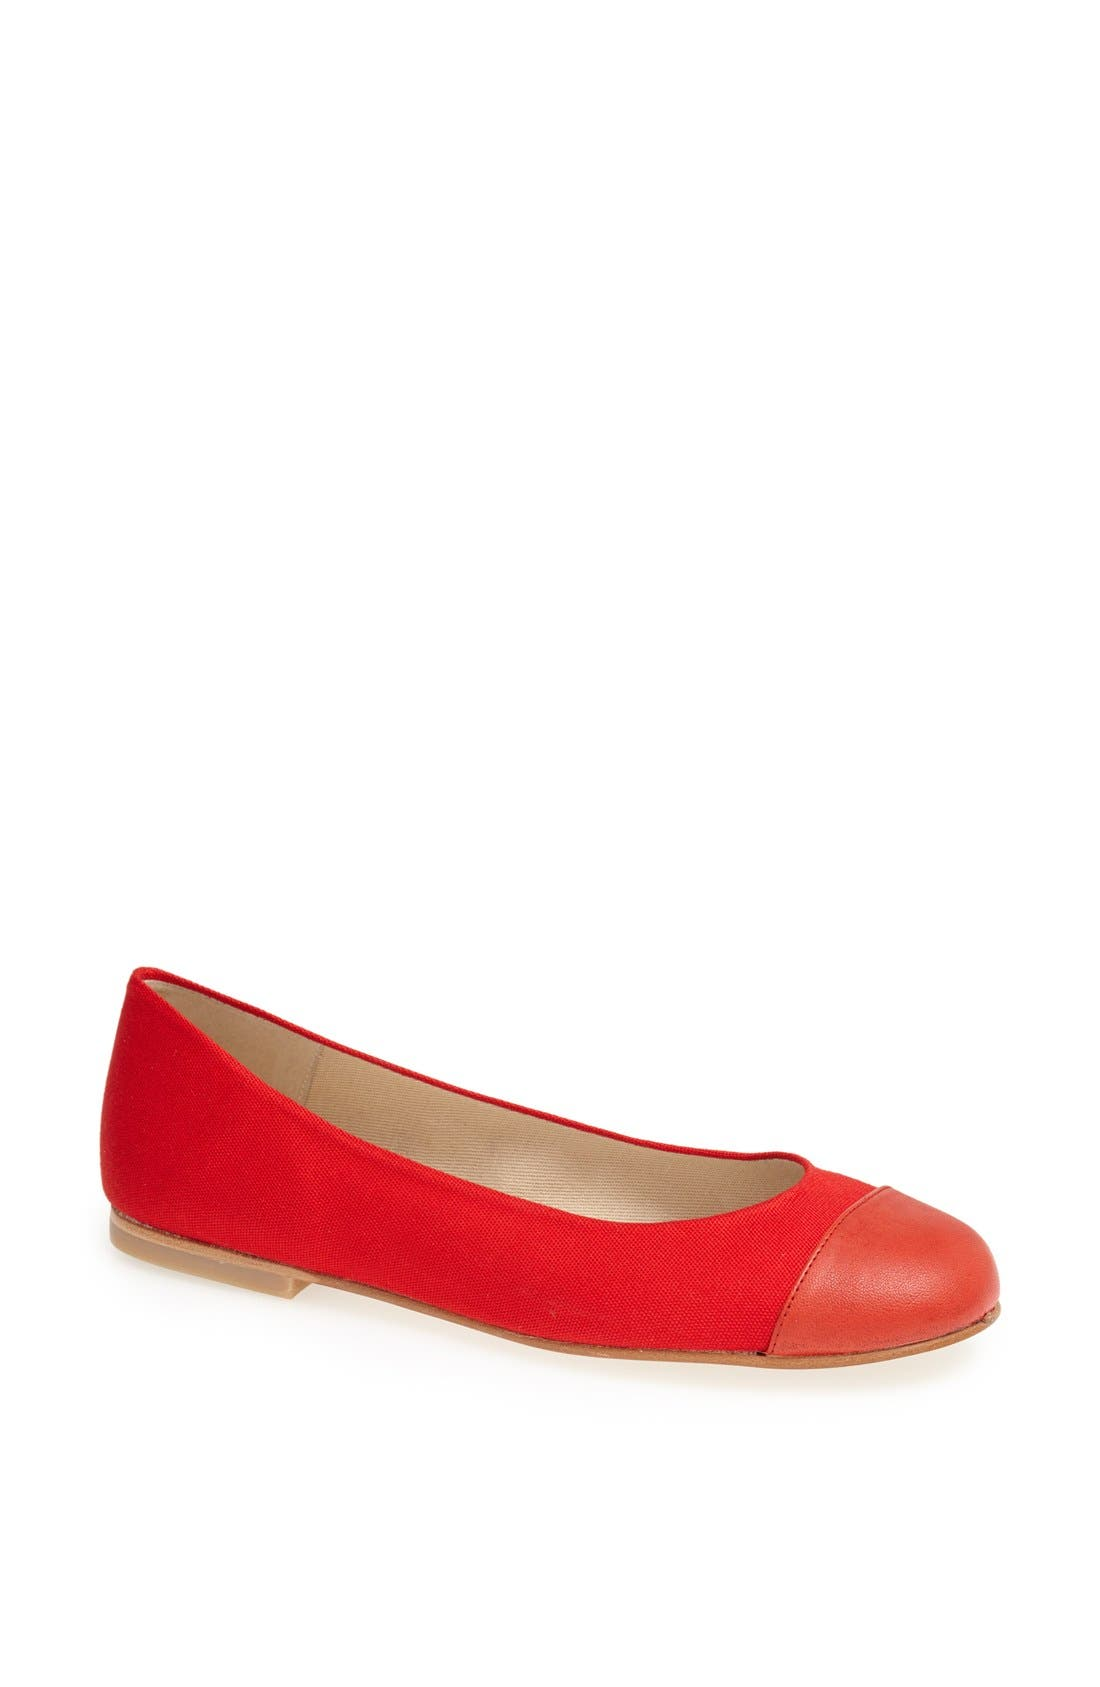 Main Image - French Sole 'Lexi' Cap Toe Skimmer